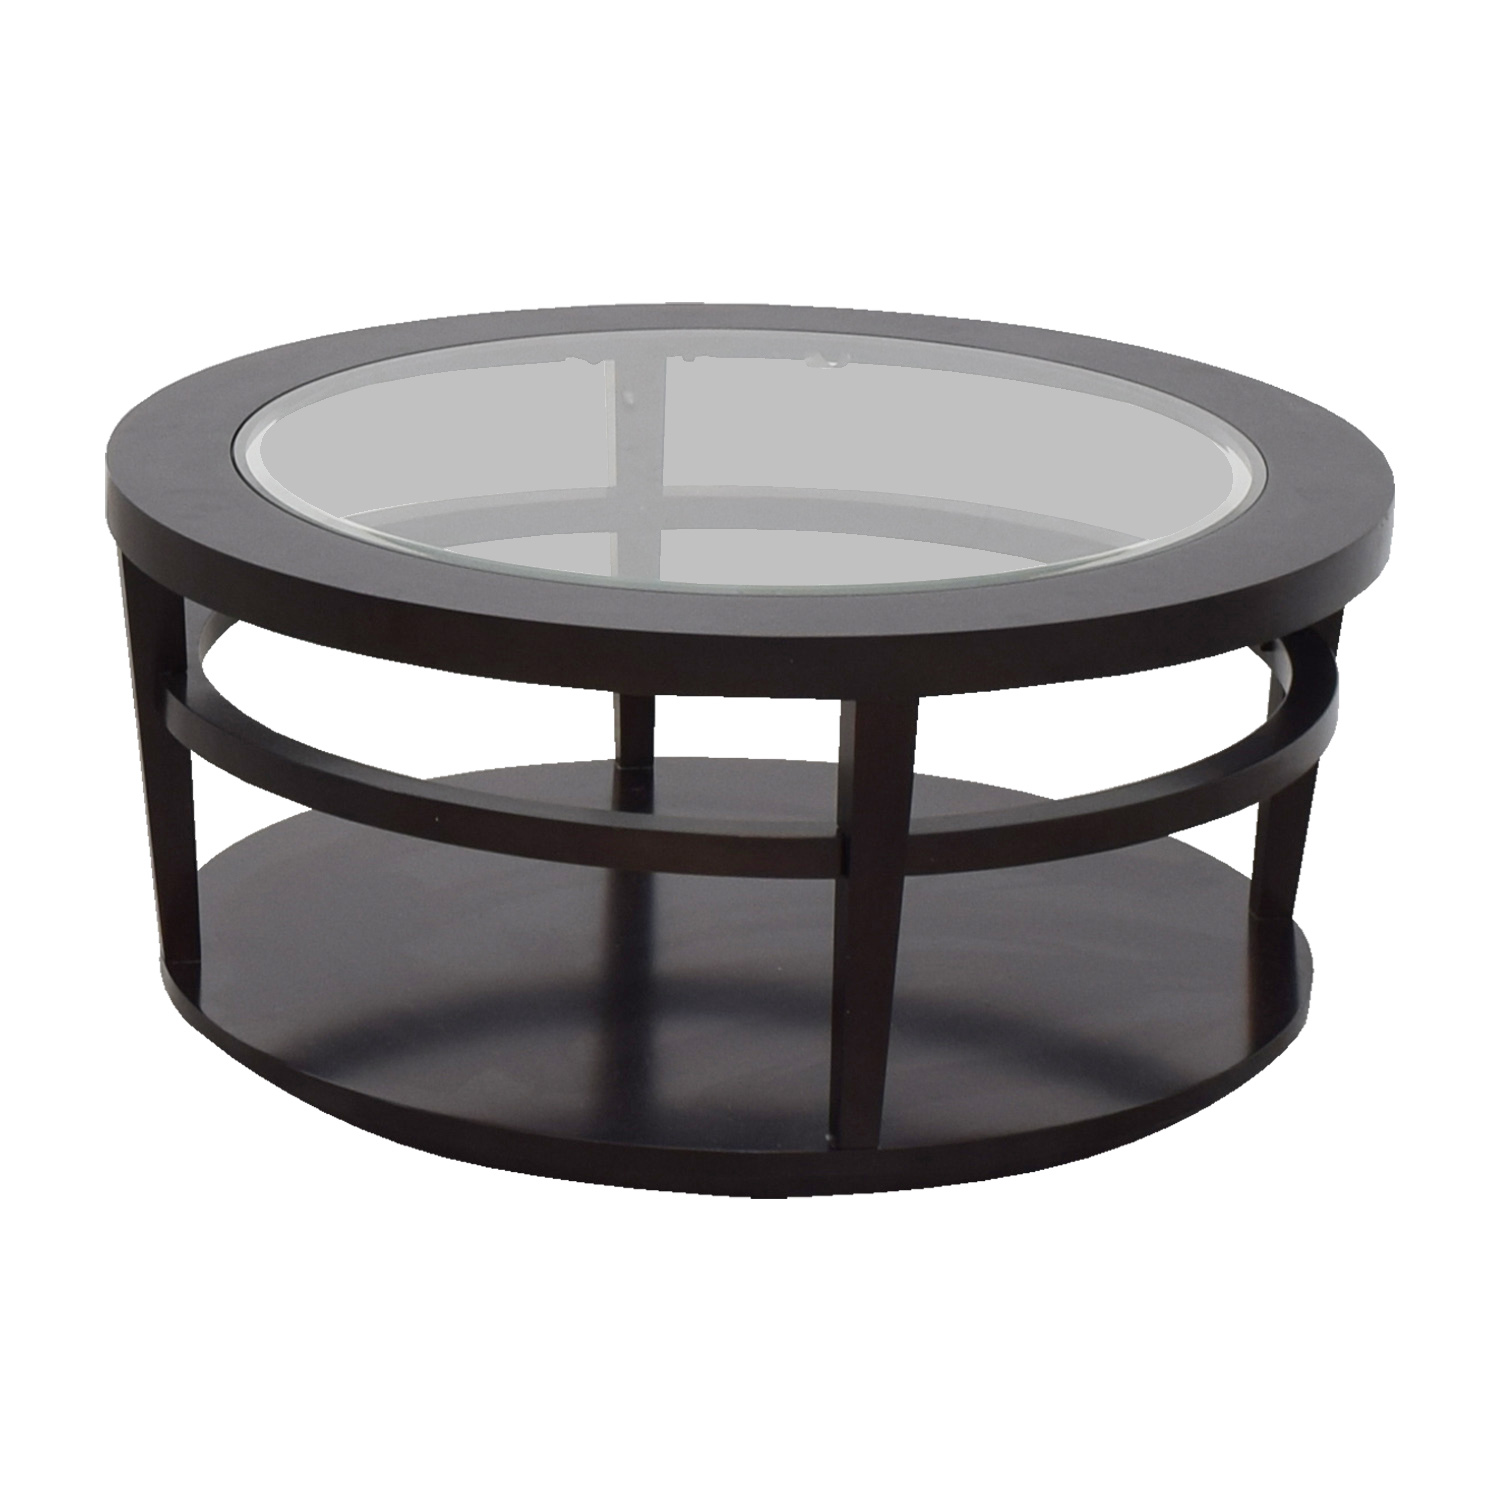 Round Coffee Table Dimensions: Macy's Macy's Avalon Round Glass And Wood Coffee